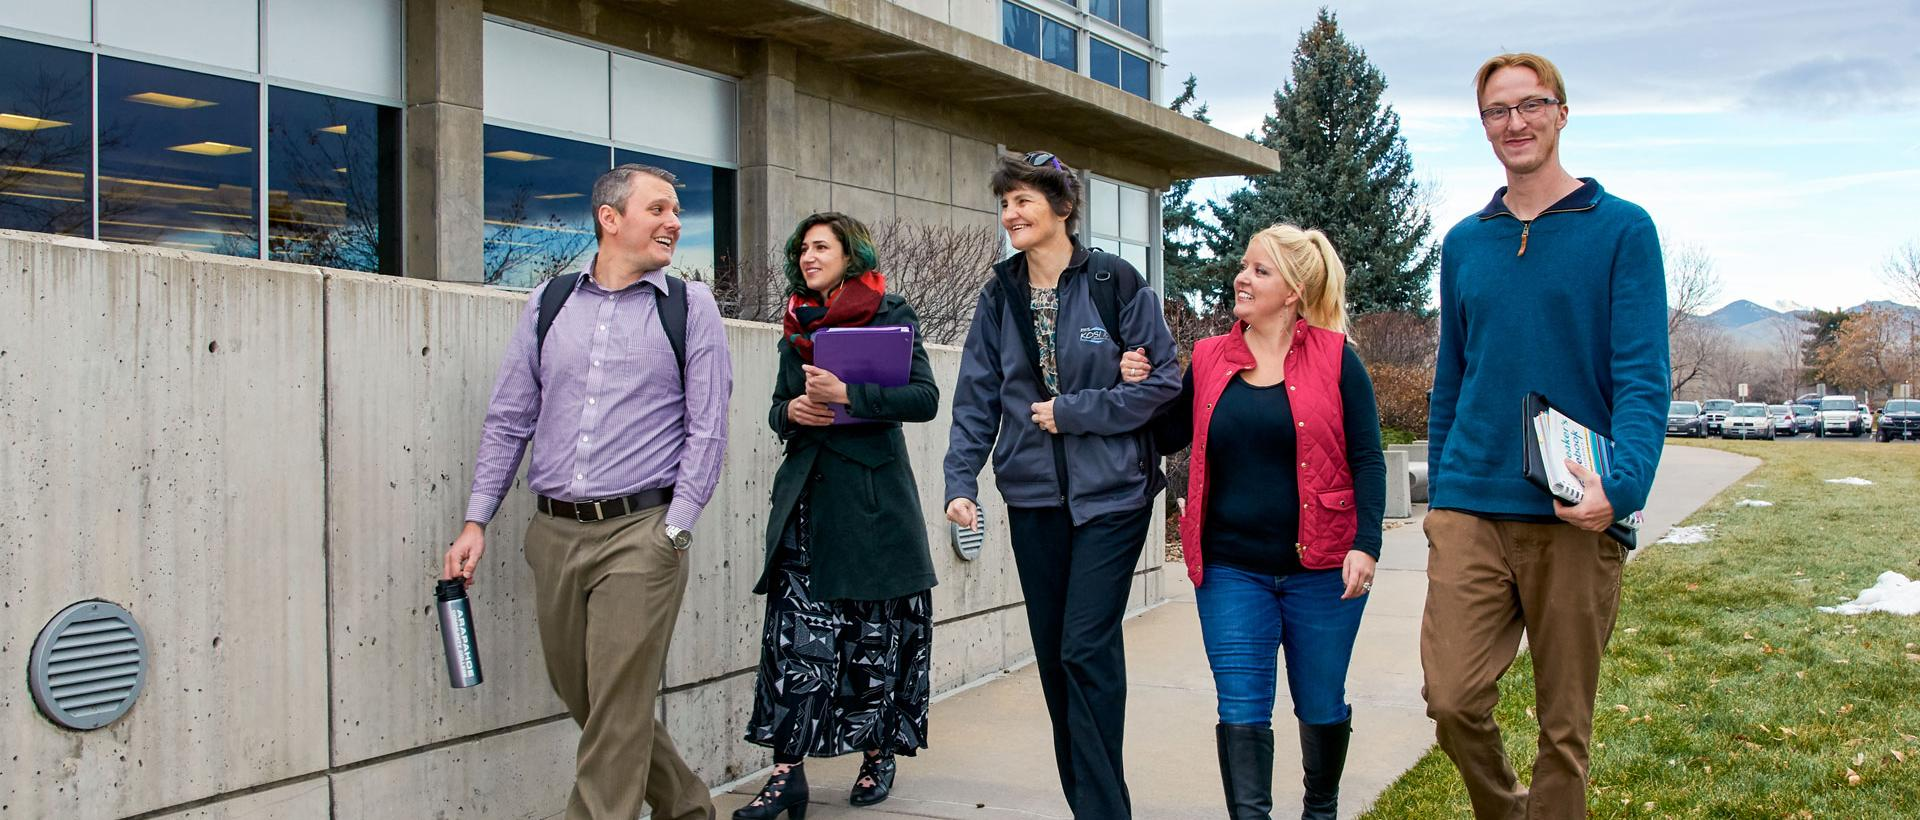 ACC students and staff outside of Littleton Campus